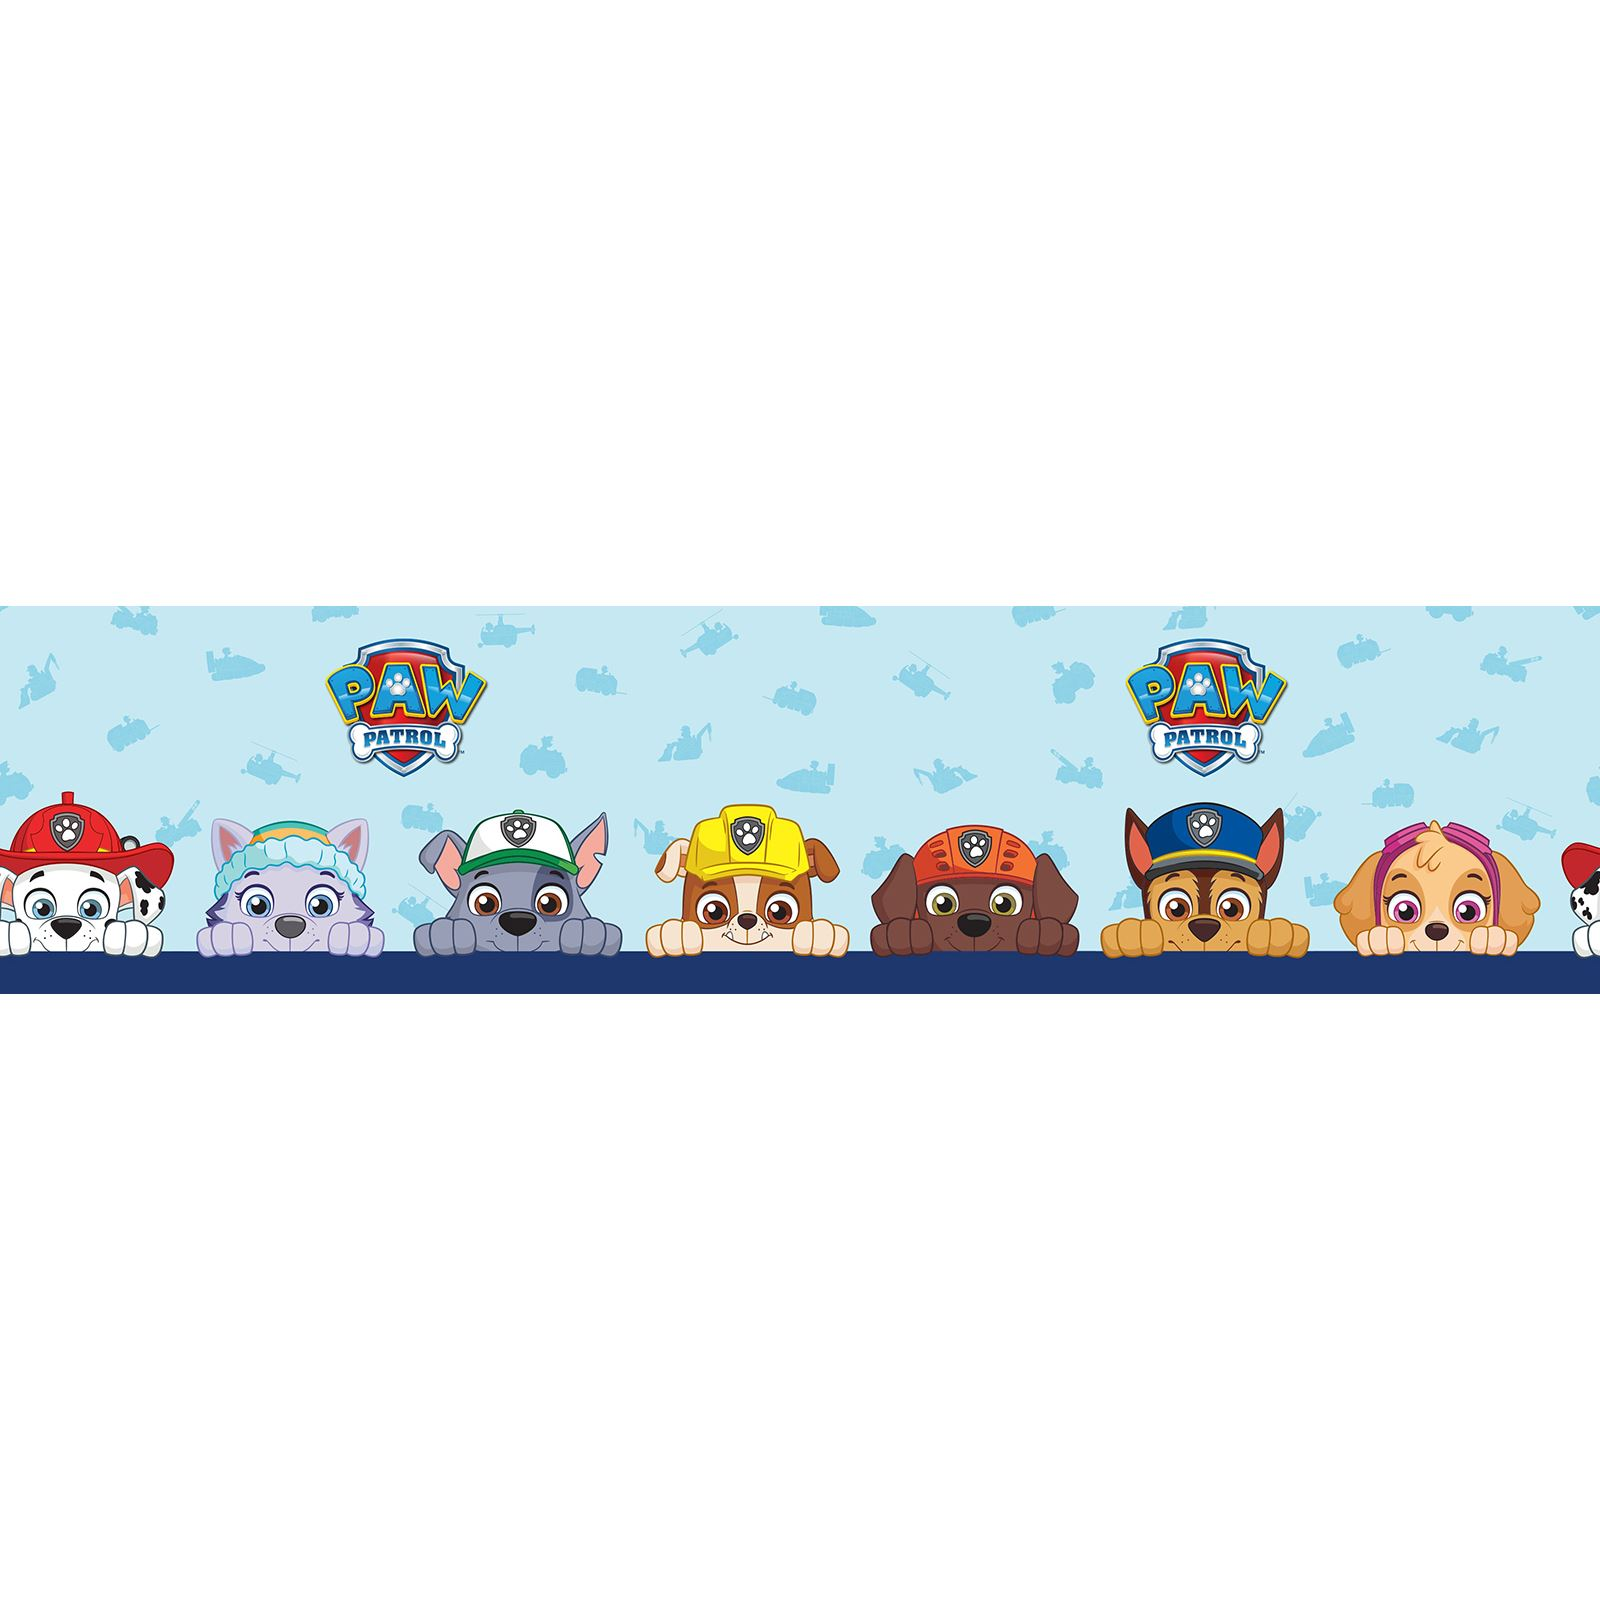 paw patrol self adhesive wallpaper border 5m long kids bedroom wall